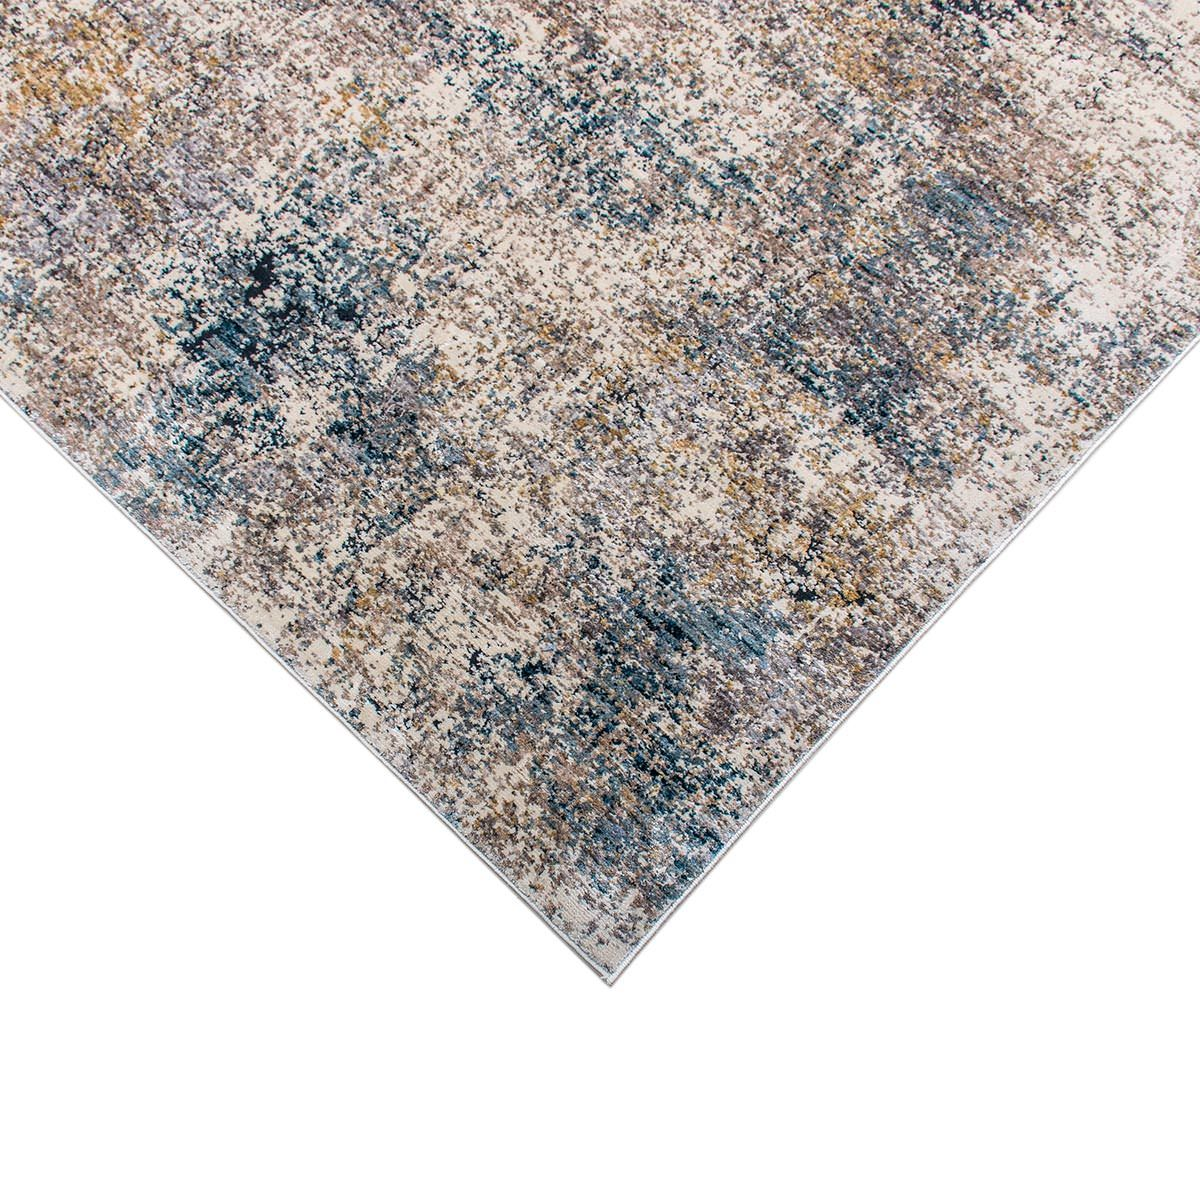 Miami Rug 01 Yellow/Blue/Grey 3